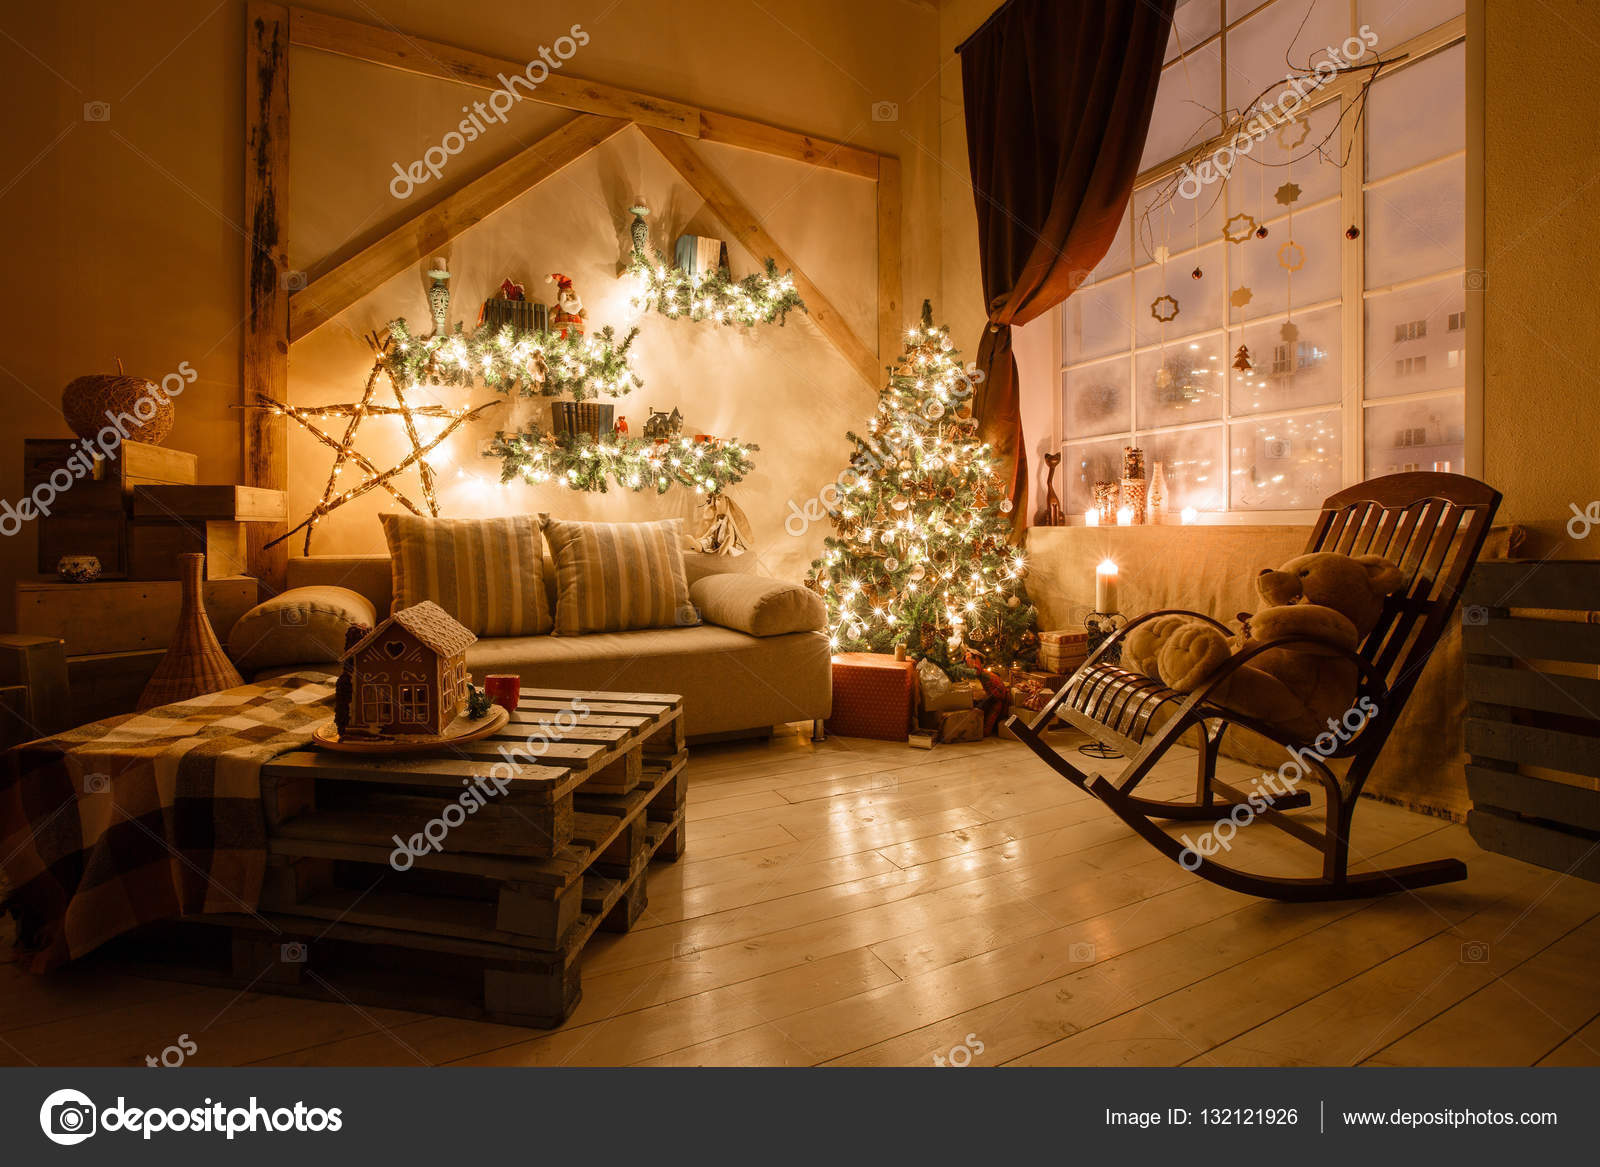 calm image of interior modern home living room decorated christmas tree and gifts sofa table covered with blanket photo by malkovkosta